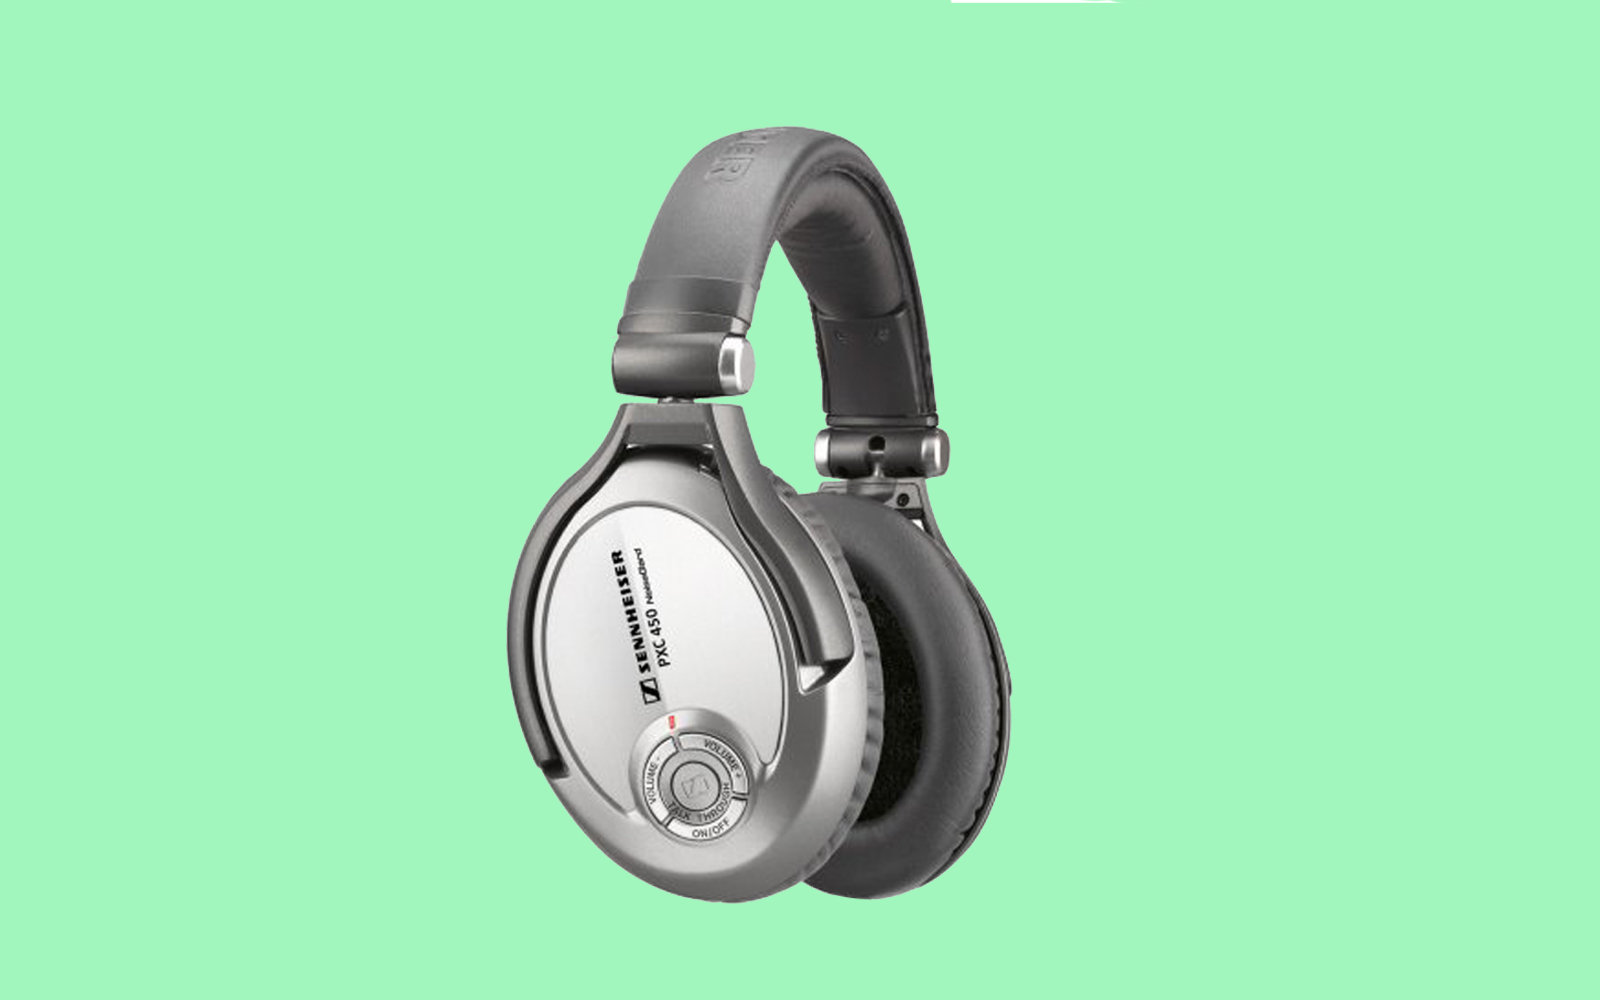 The Ultimate Frequent Flier Accessory: Noise-canceling Headphones